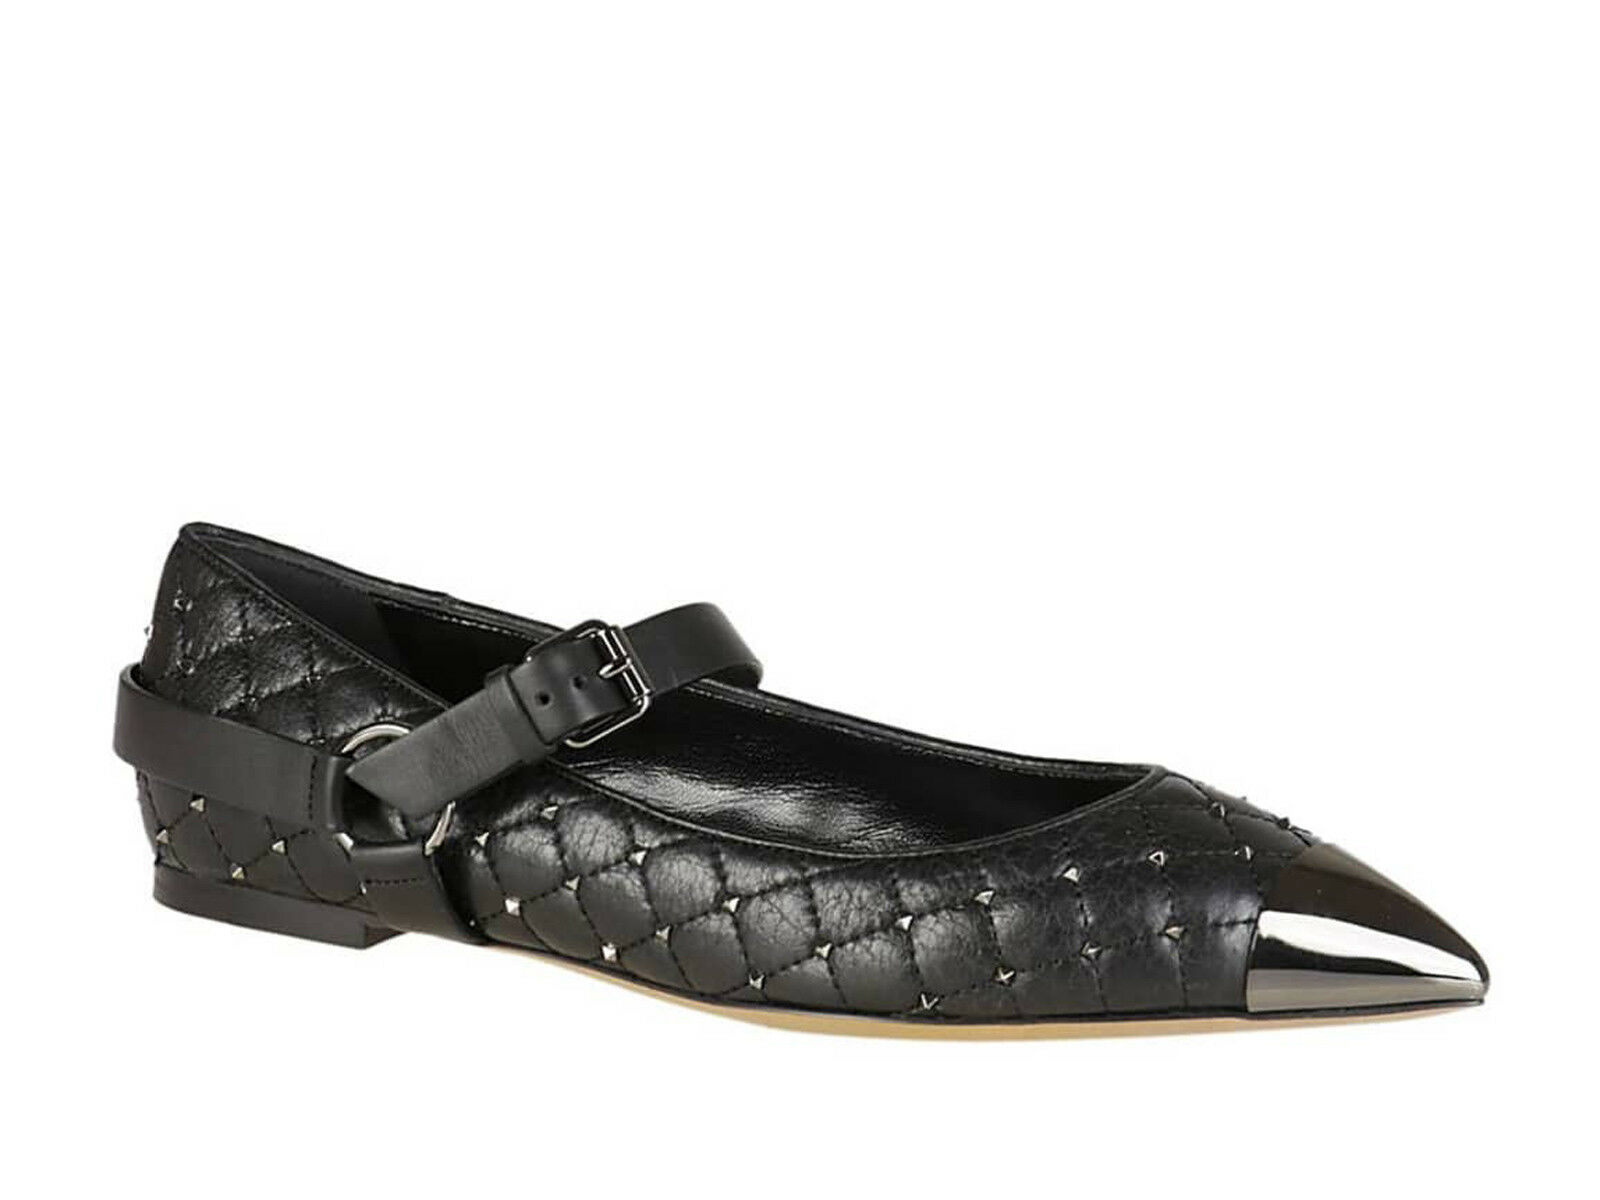 Valentino flat ballerinas shoes in lined black leather with studs made in